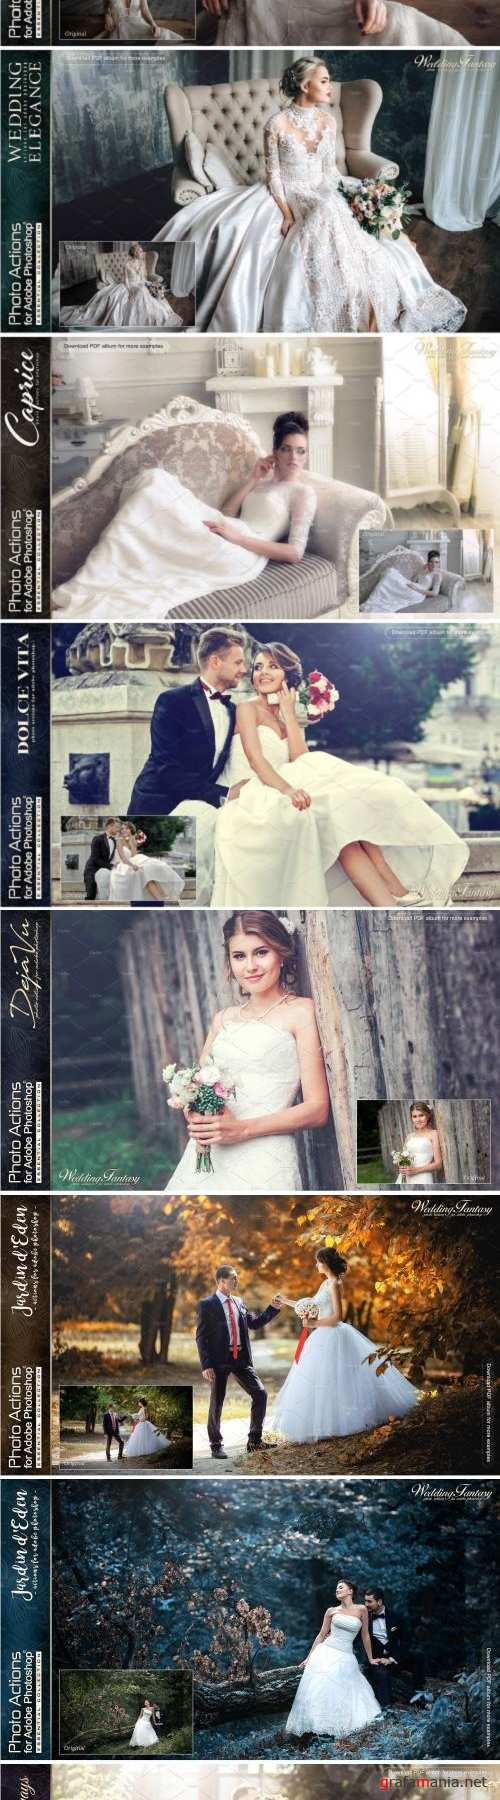 Actions for Photoshop / Wedding 2174196